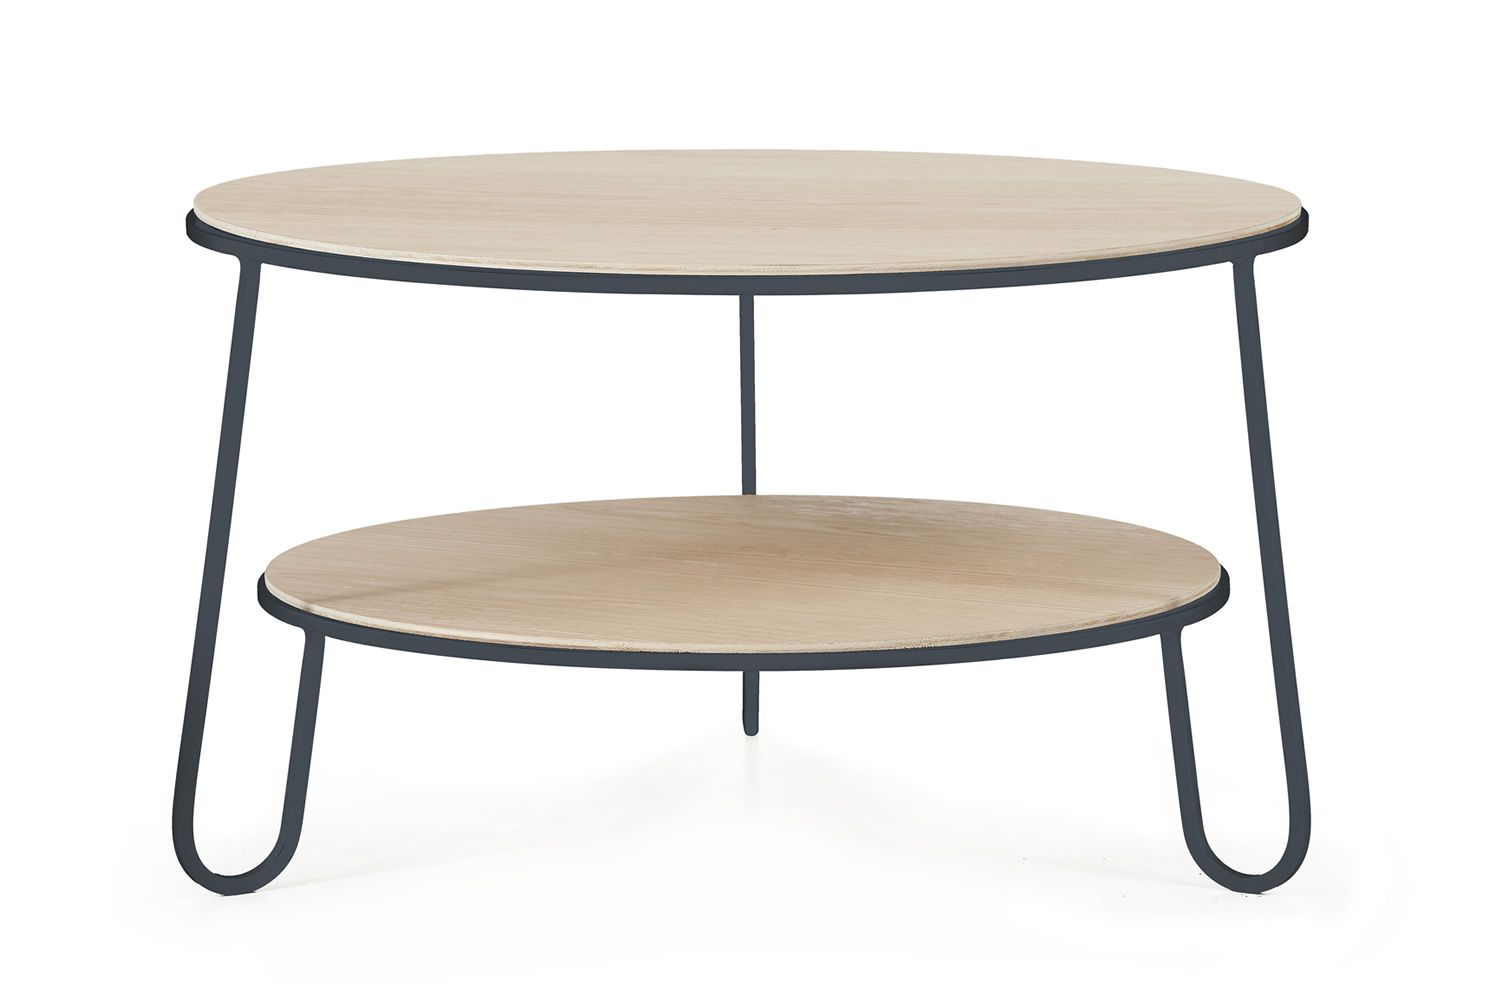 Sofa table in slate grey varnished metal, with wooden top, ∅ 70 cm